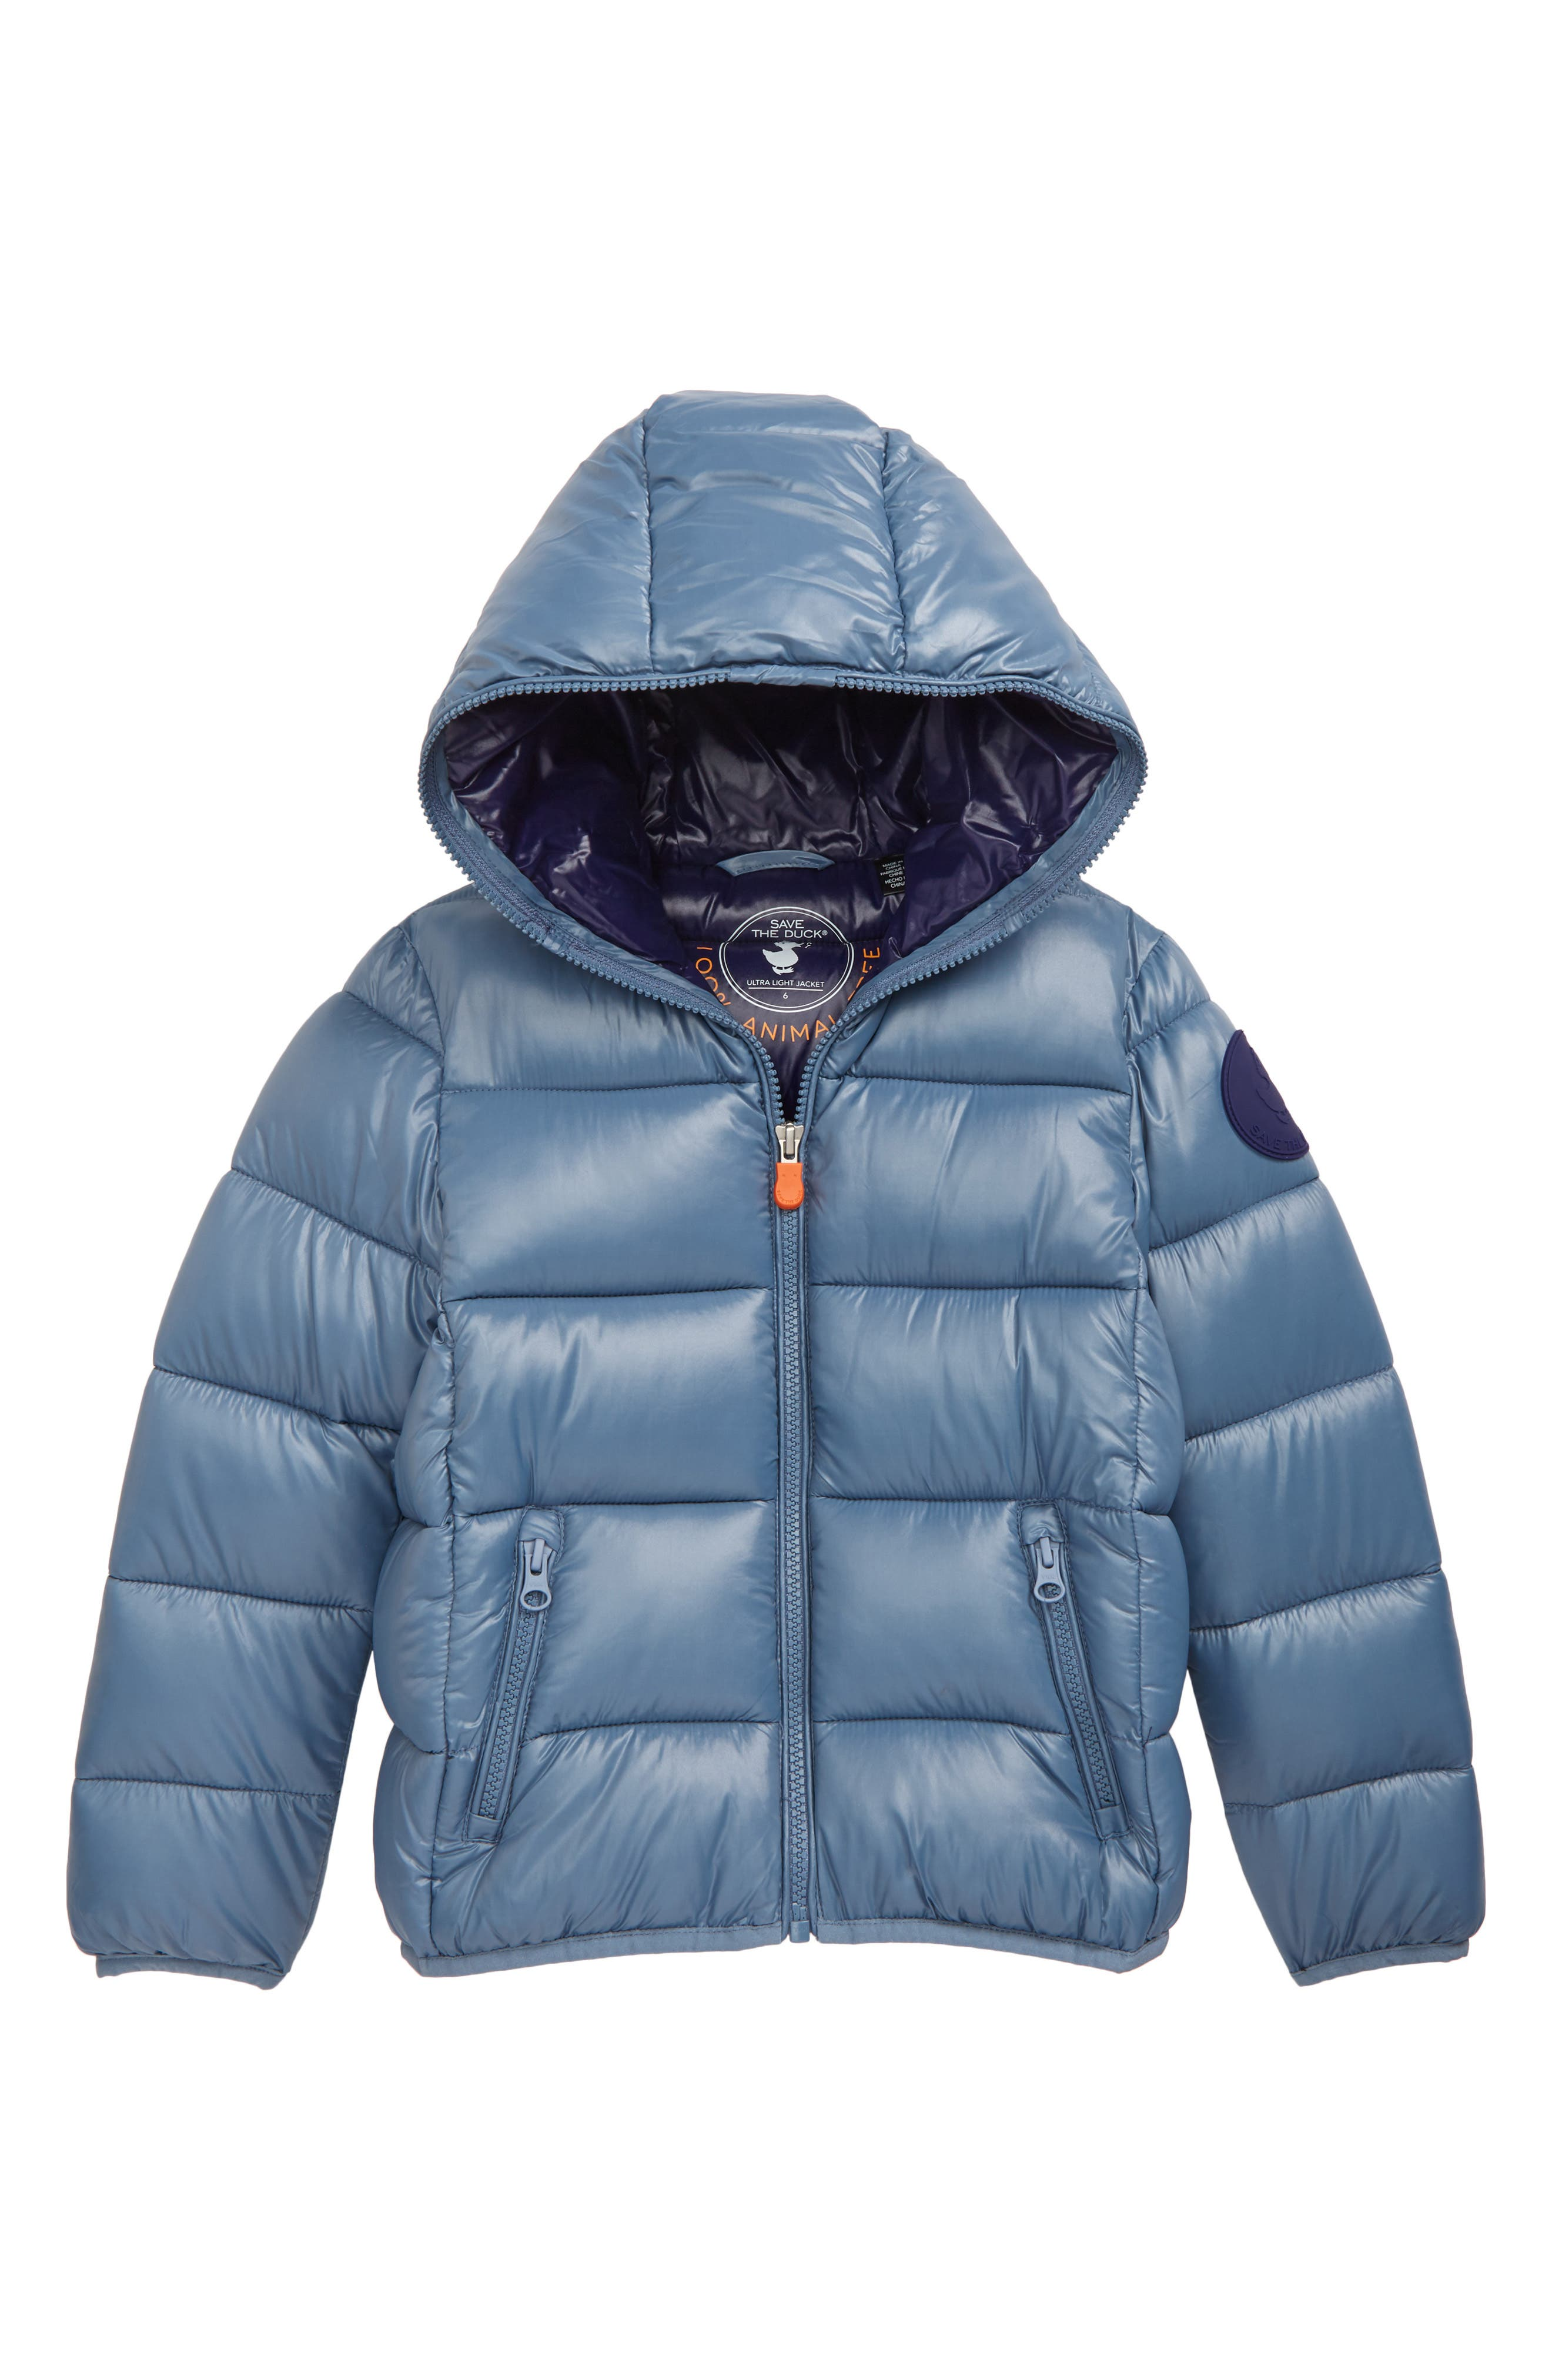 Phorecys Kids Boys Coats Padded Winter Parka Jacket Overcoats Age of 5-12